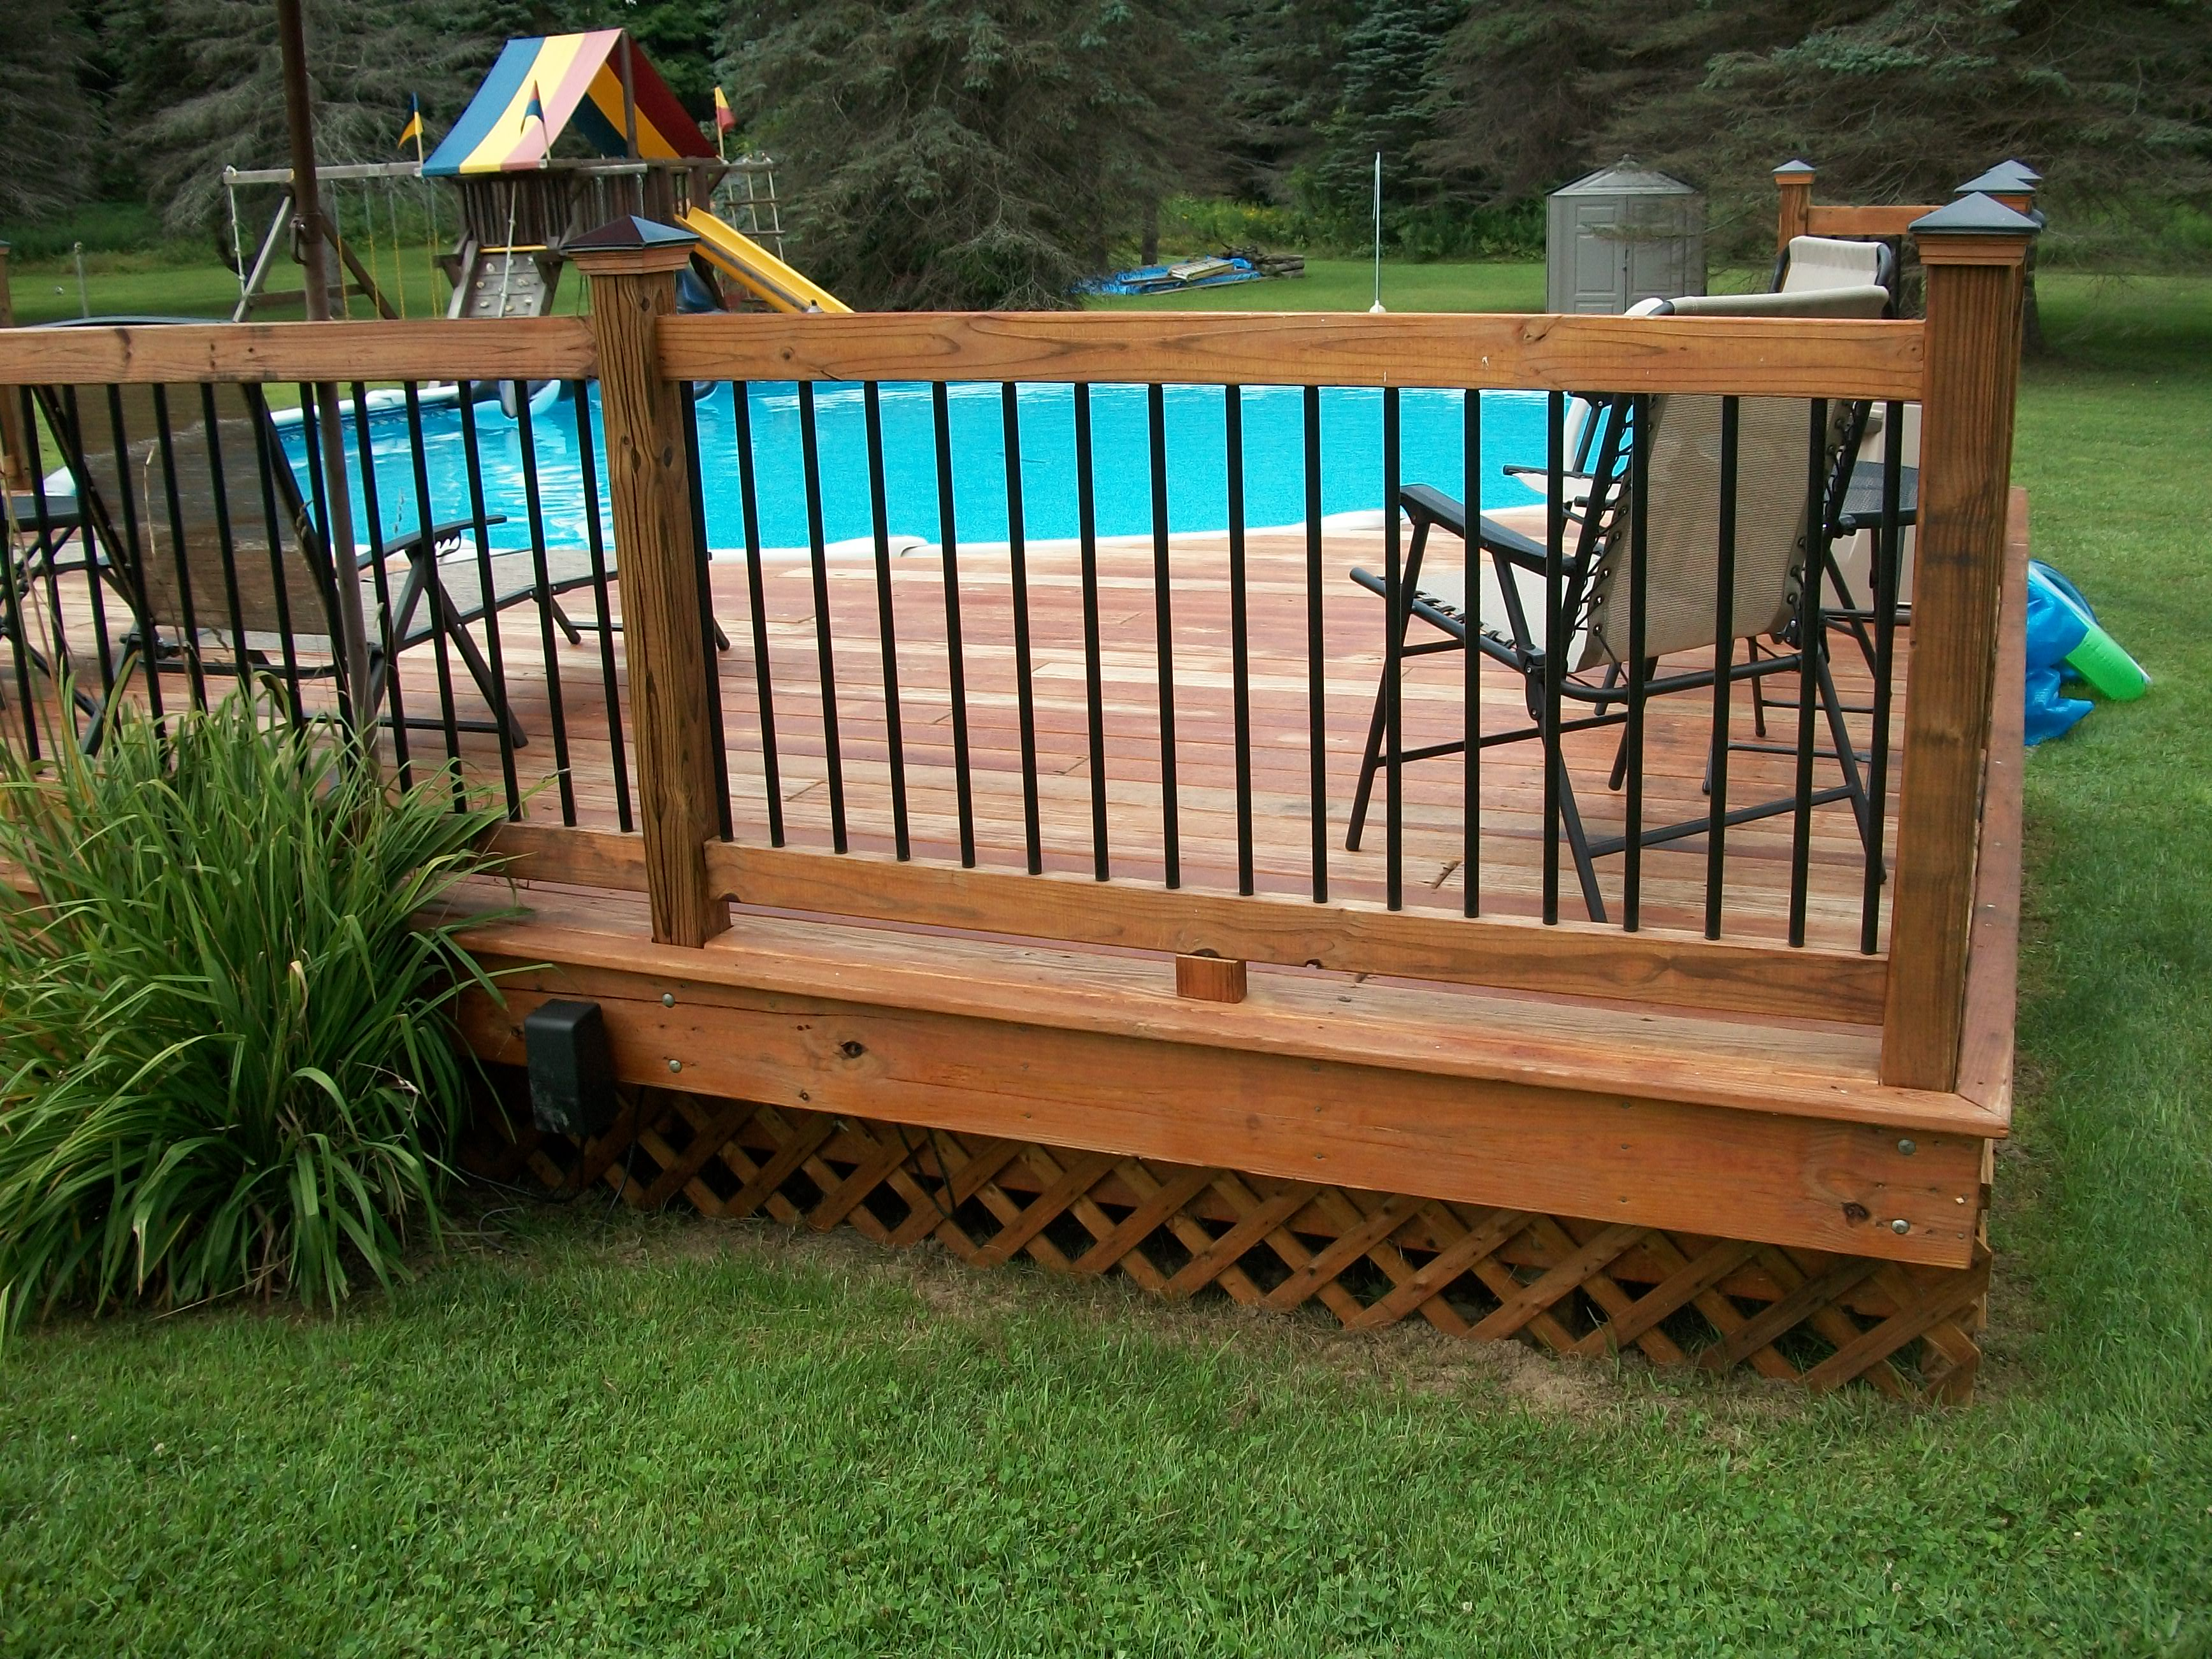 Outdoor Living | Patriot Construction of Upstate New York ... on Patriot Outdoor Living id=66938